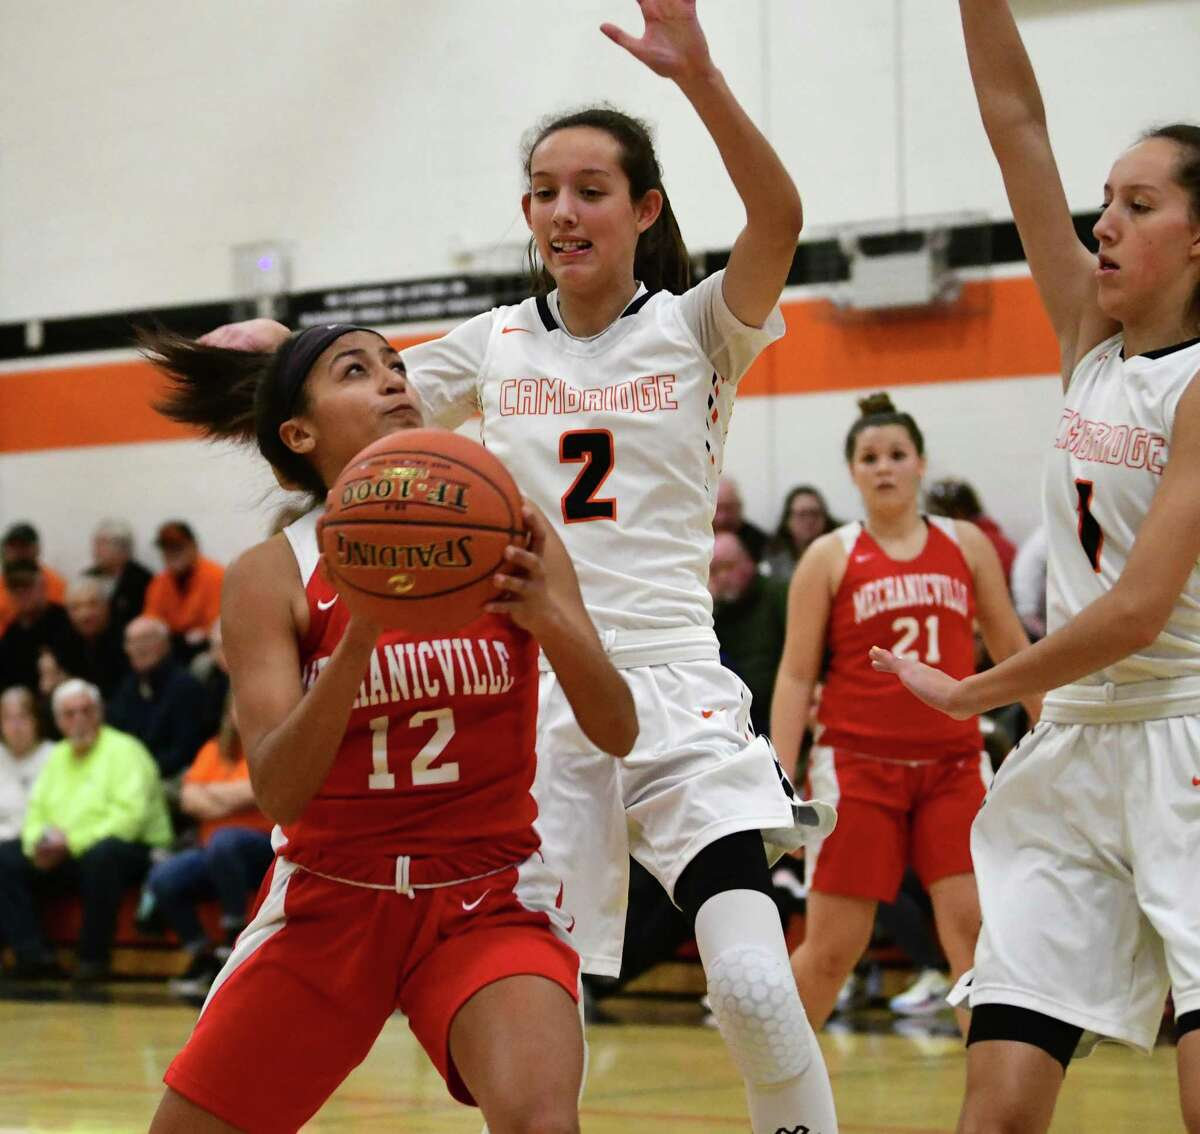 Mechanicville's Jada Brown drives to the basket against Cambridge's Sophie Phillips, #2, and Lilly Phillips during a game on Wednesday, Jan. 8, 2020 in Cambridge, N.Y. (Lori Van Buren/Times Union)